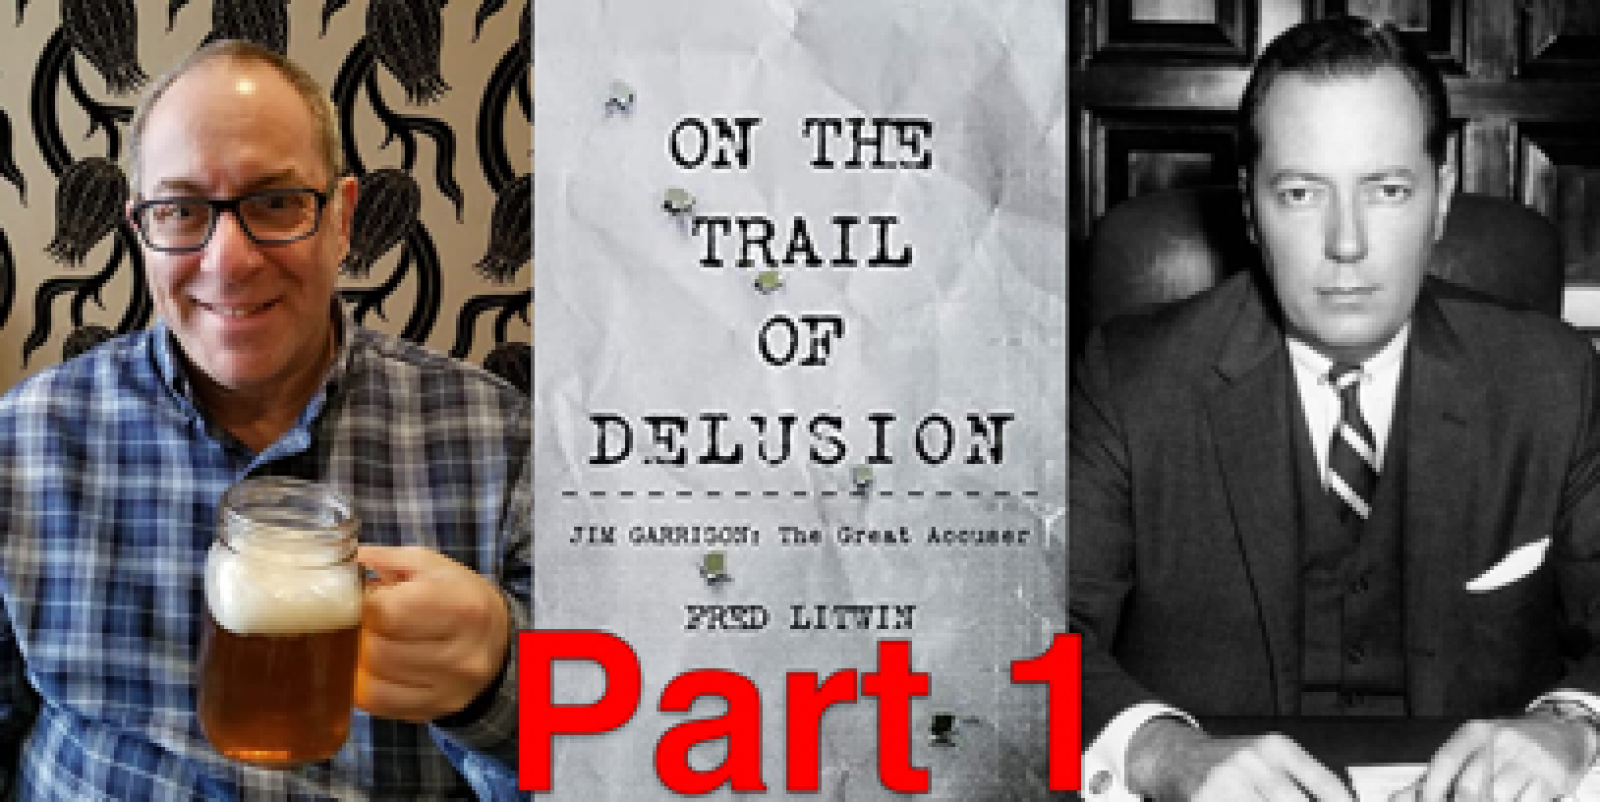 Fred Litwin, On the Trail of Delusion – Part One